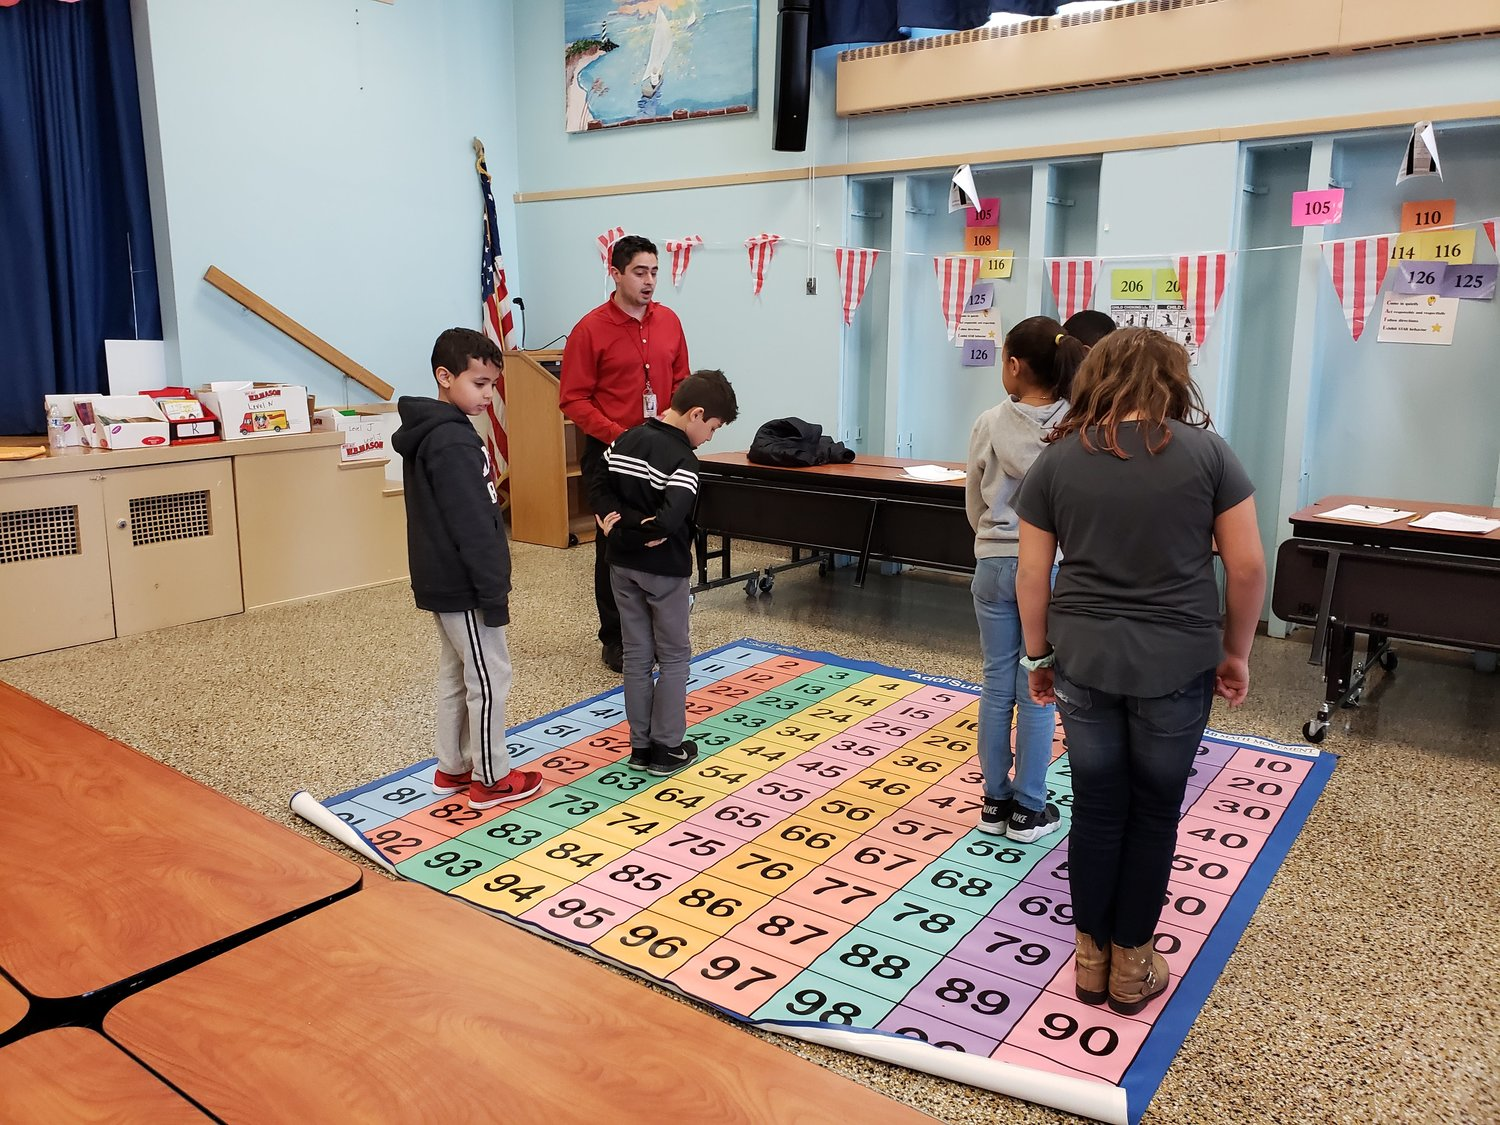 Fourth-grade teacher George DiGiovanni called out numbers for the students to add up to 100 during the adding and subtracting portion of Math Mats.